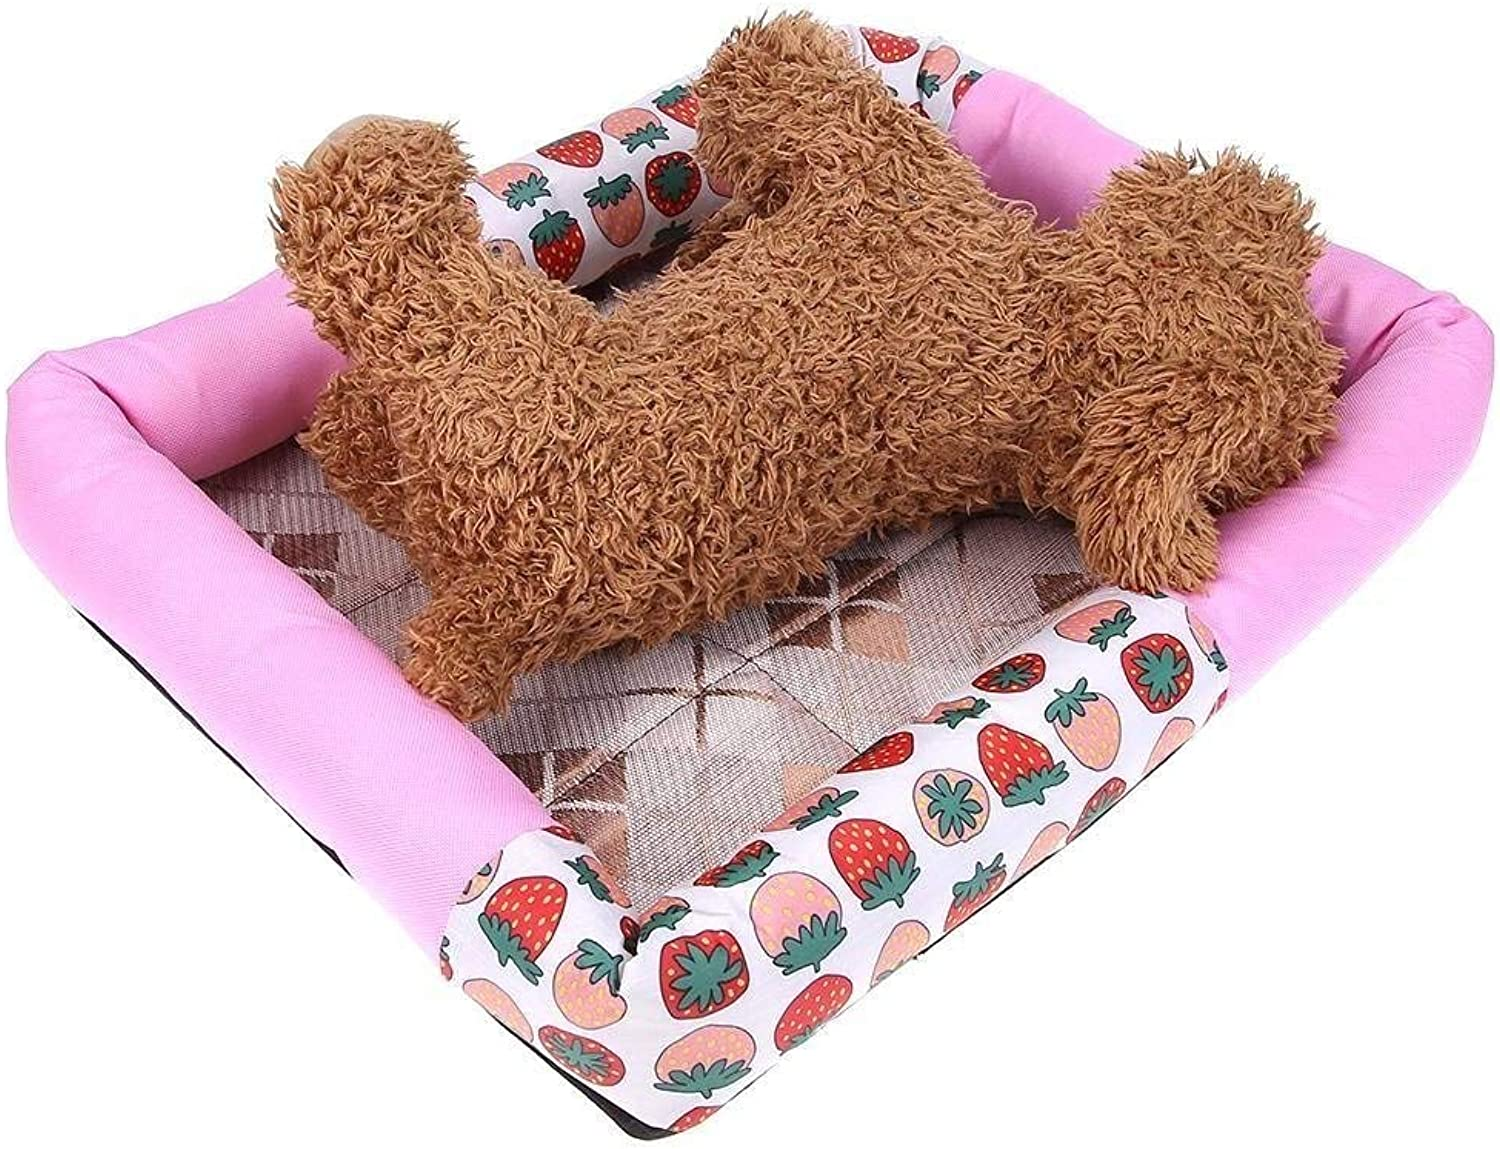 YQSMYSW Waterproof Pet Dog Bed Puppy House Kennel Cat Nest Mat Pink S for Cat Dog